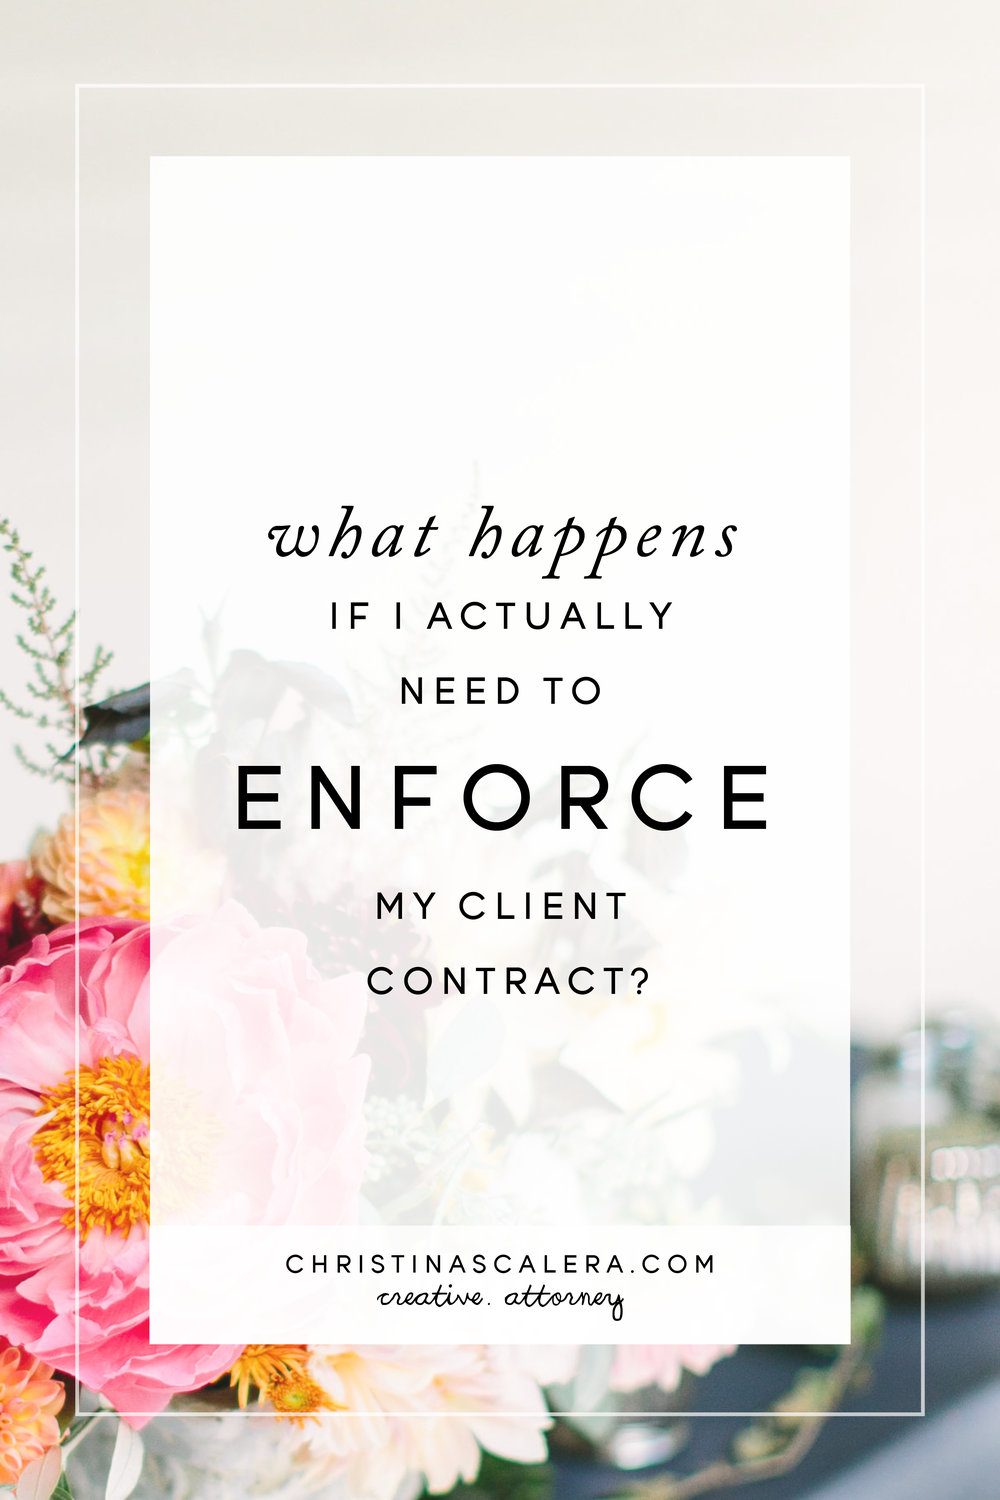 WHAT HAPPENS IF I ACTUALLY NEED TO ENFORCE MY CLIENT CONTRACT?